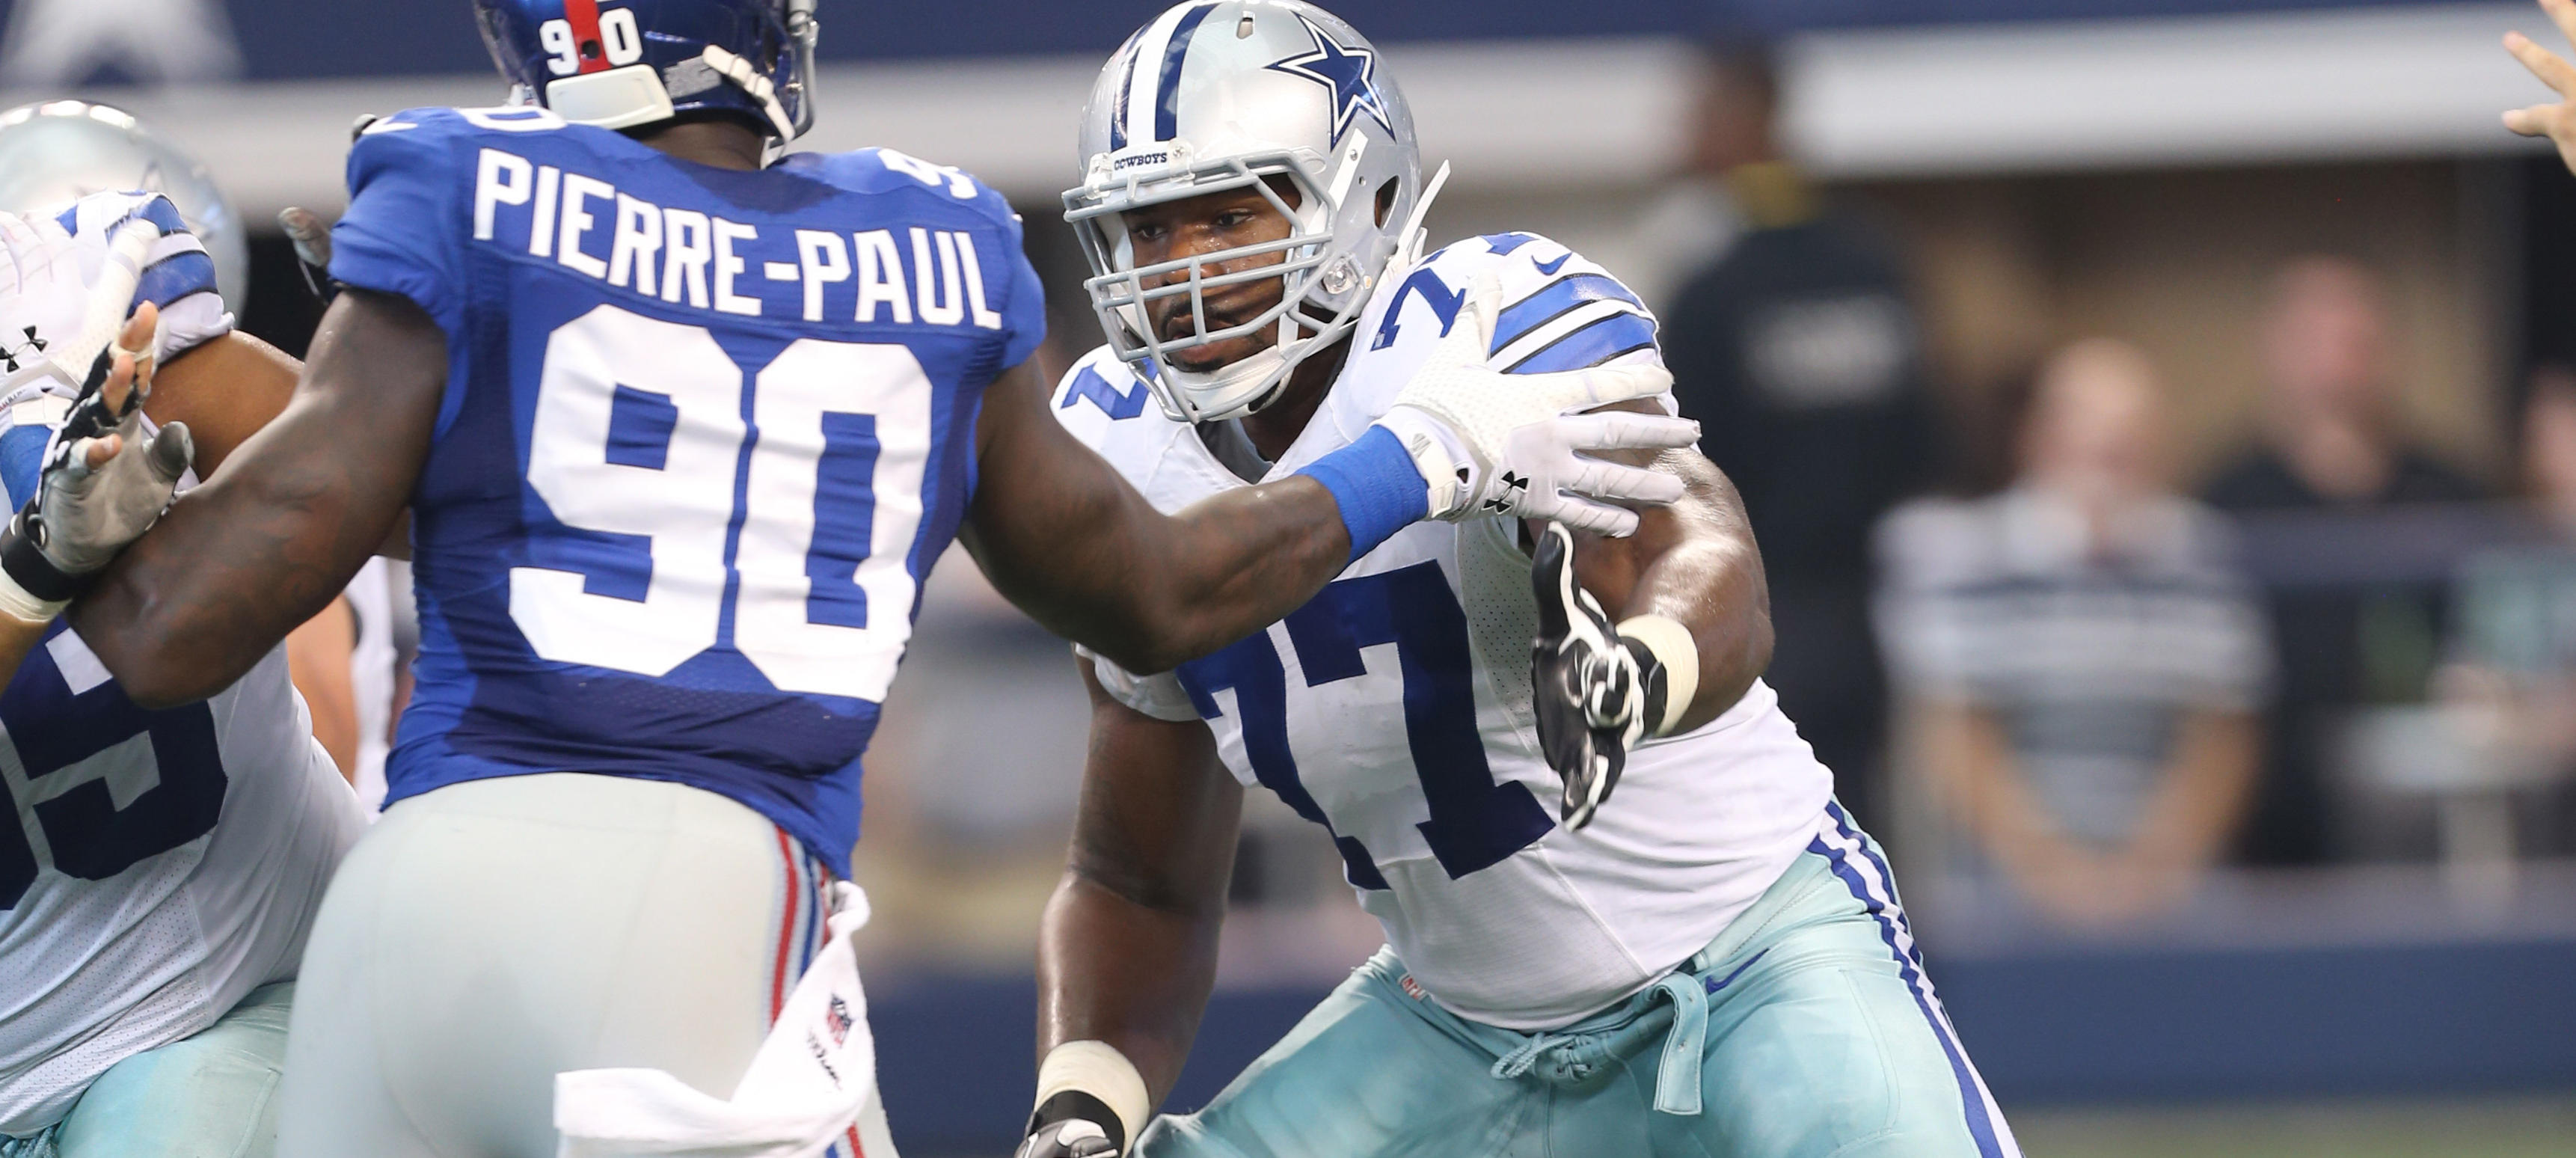 Cowboys Blog - NFC East Free Agency: Key New York Giants Players 1